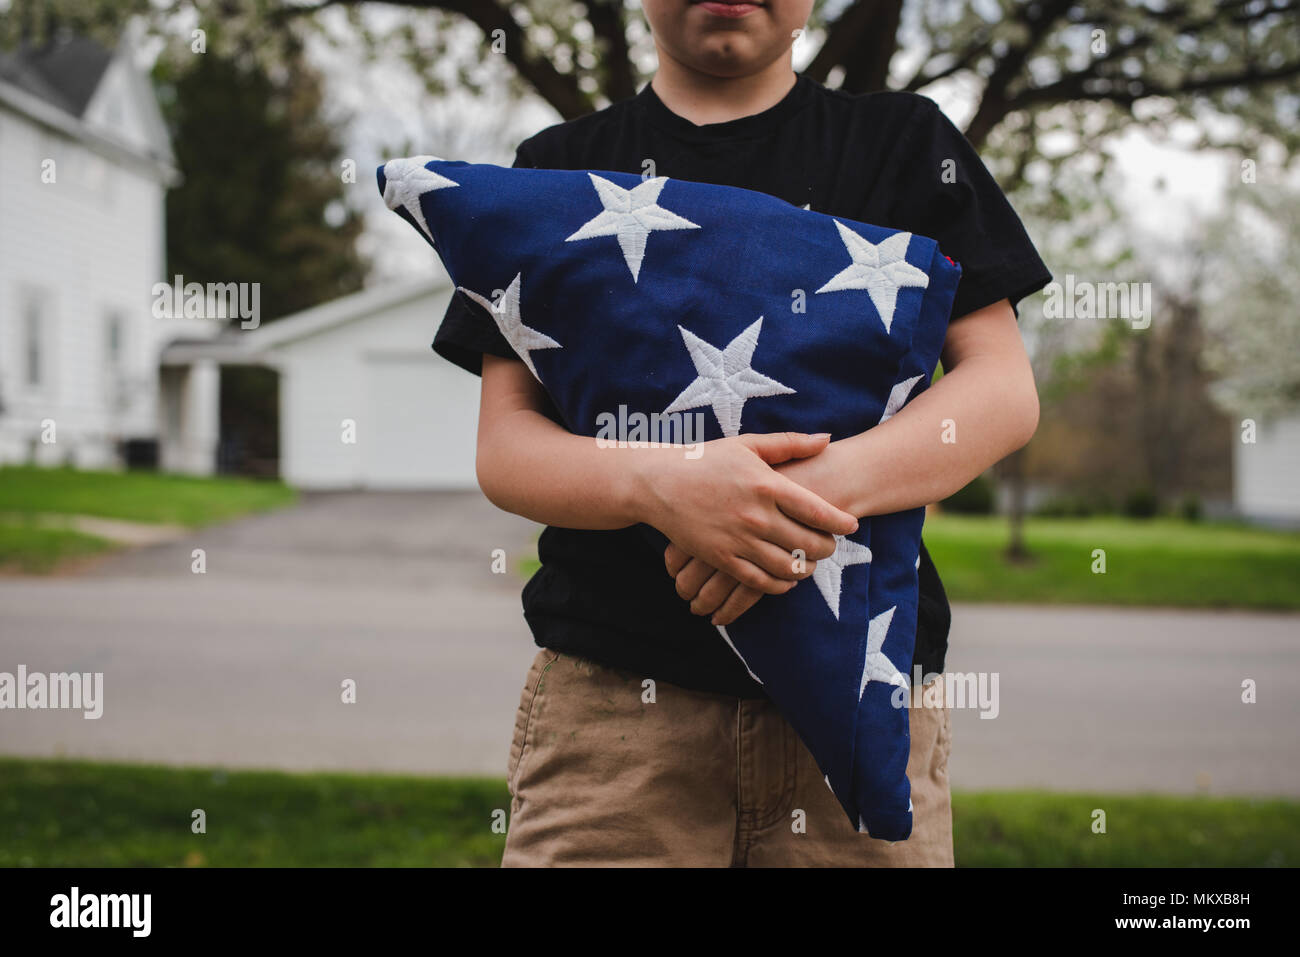 A young boy holding a folded American flag. - Stock Image